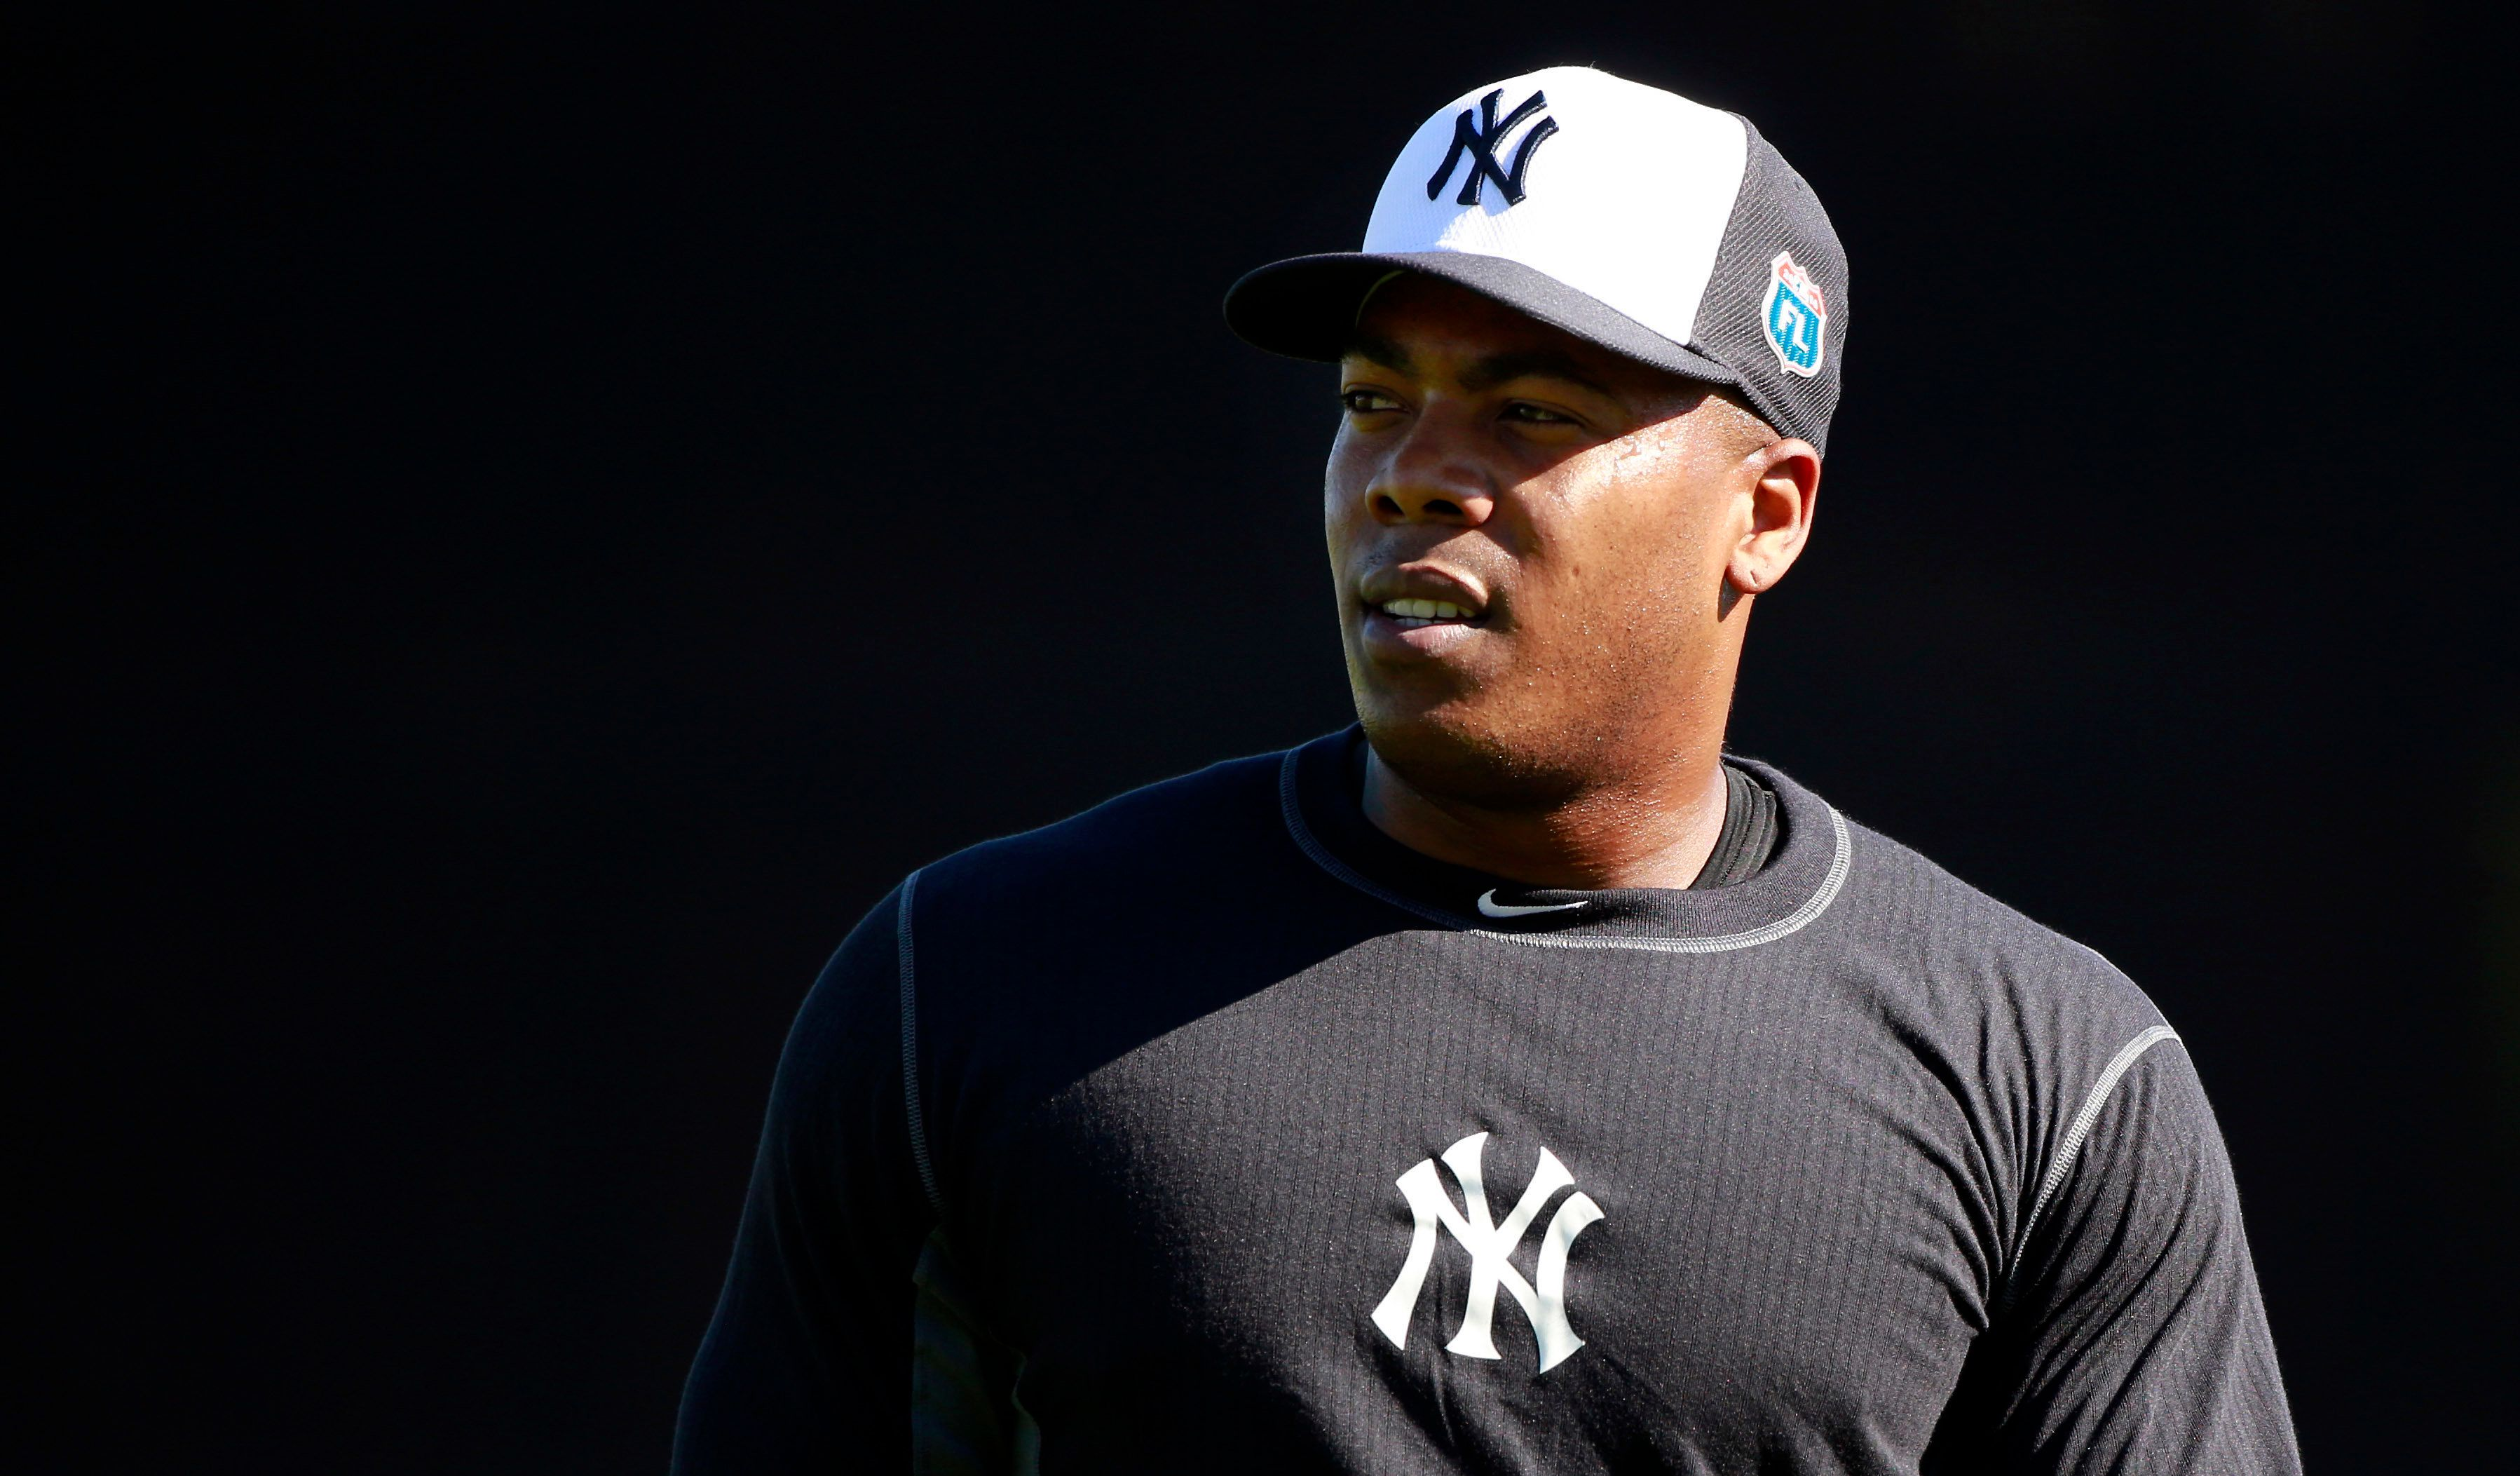 The Yankees' star pitcher returns from his domestic violence suspension without enacting any changes to his behavior.